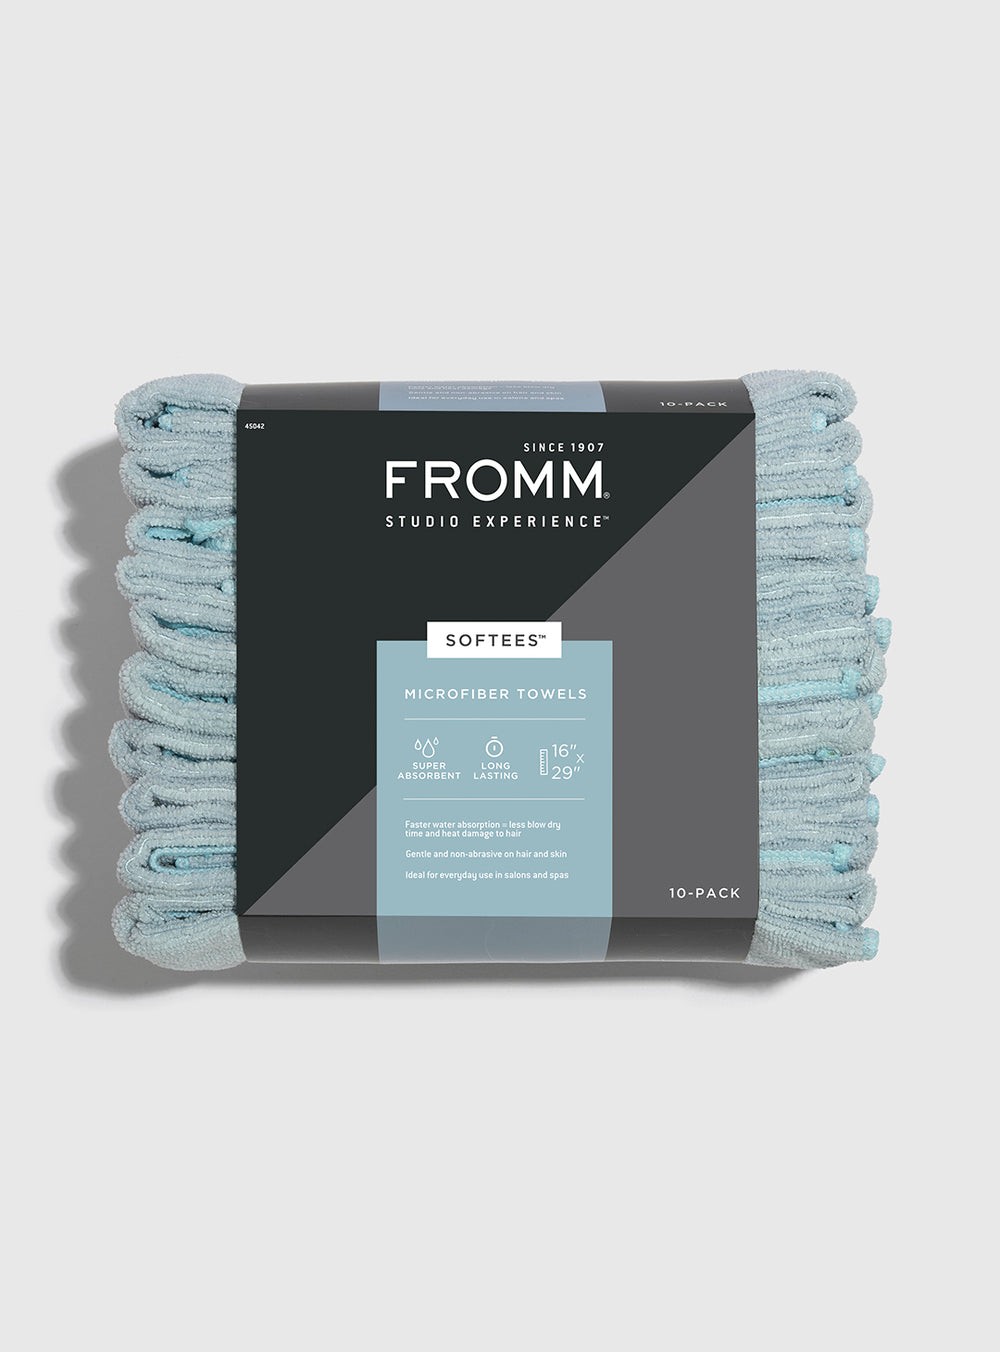 Fromm Pro Professional Hair Salon 10 Pack of Softees Microfiber Aqua Towels